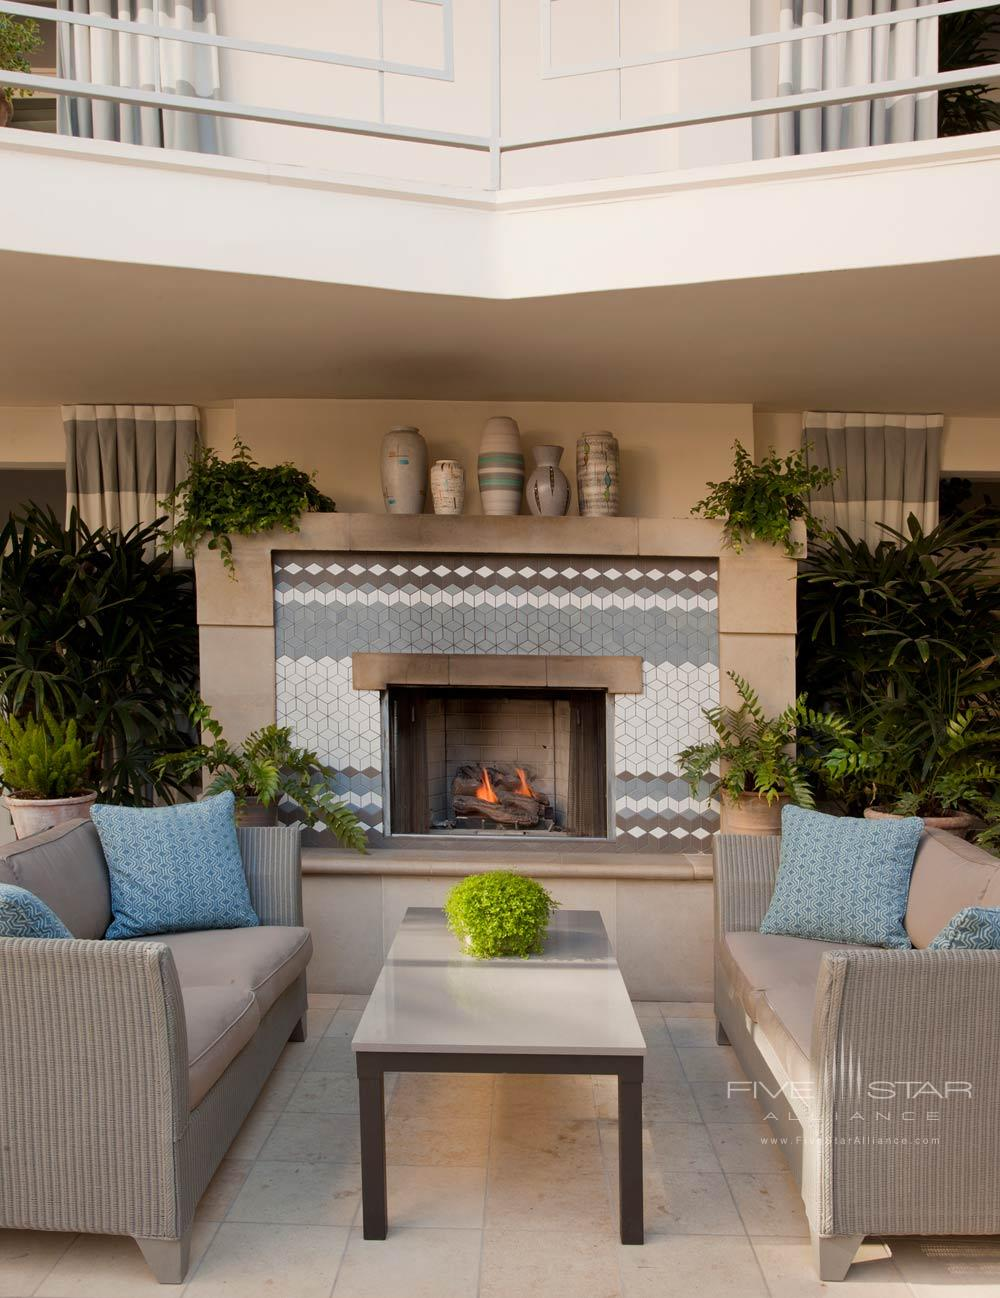 Lounge near the courtyard fireplace at Oceana Beach Club Hotel, Santa Monica, CA